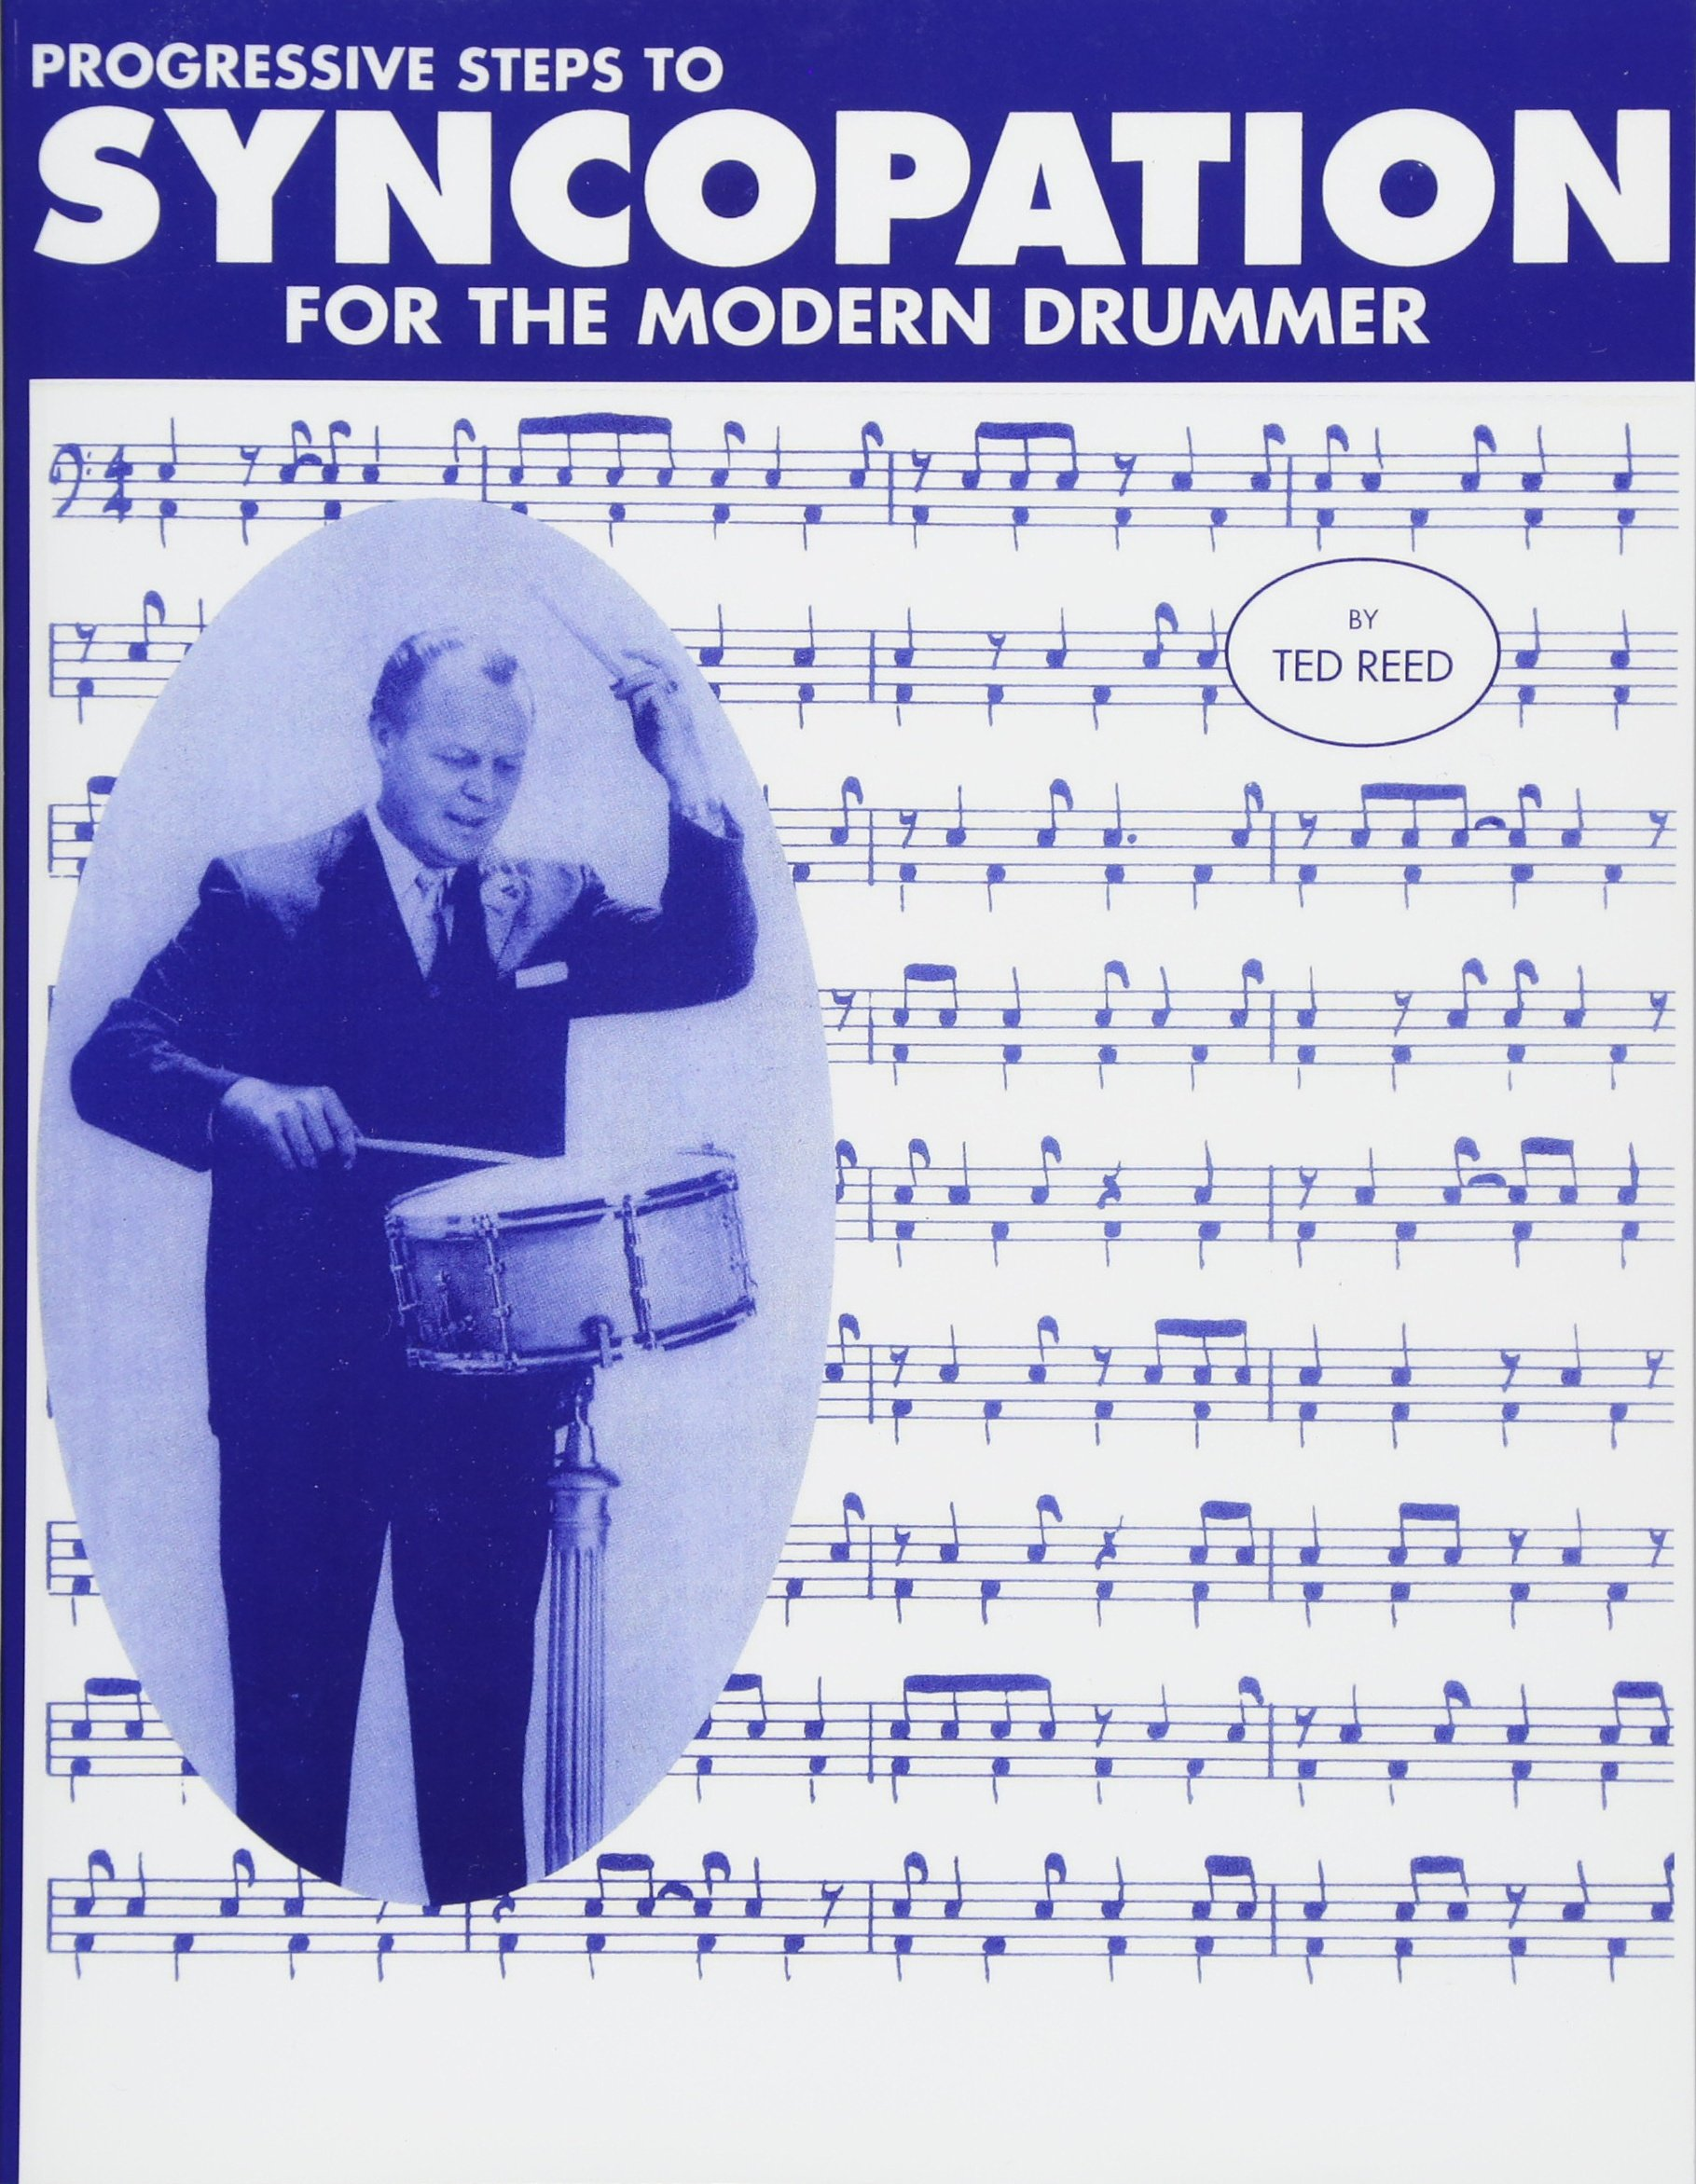 Progressive Steps to Syncopation for the Modern Drummer